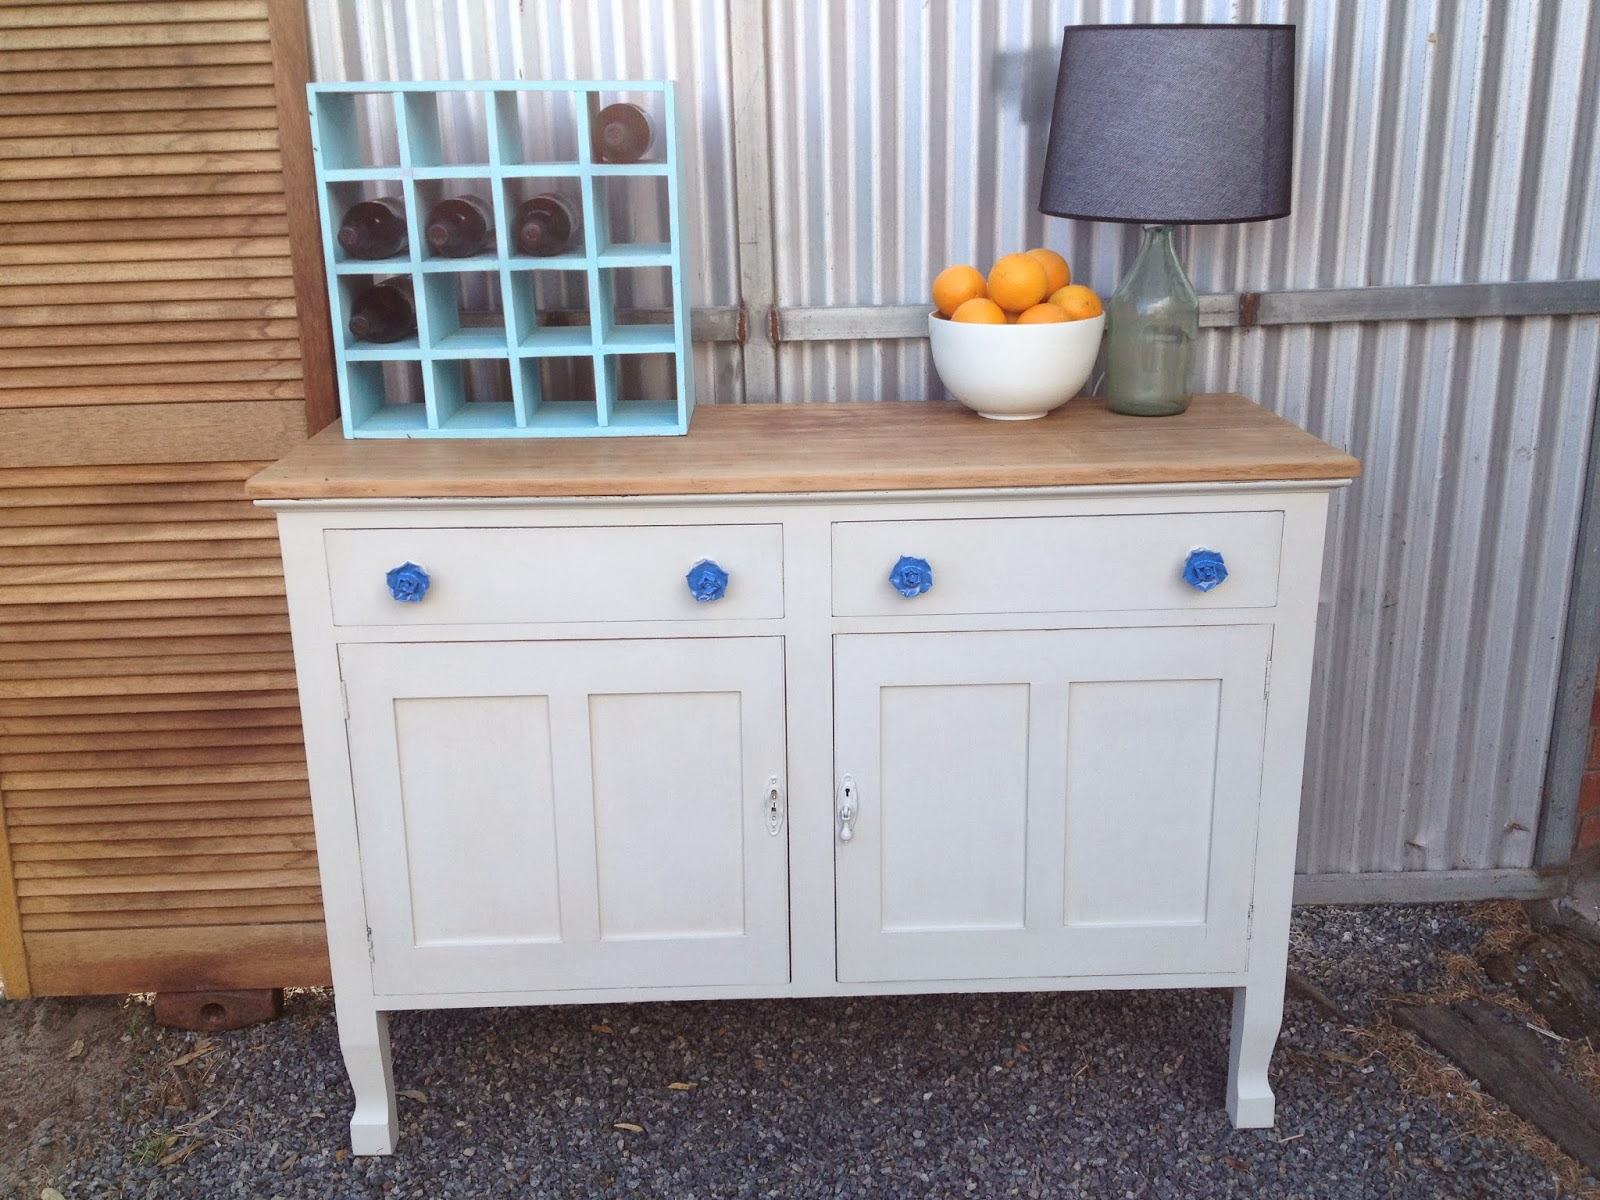 drip designs furniture antique white oak buffet sideboard rh drip designsfurniture blogspot com white washed oak buffet white oak buffet table